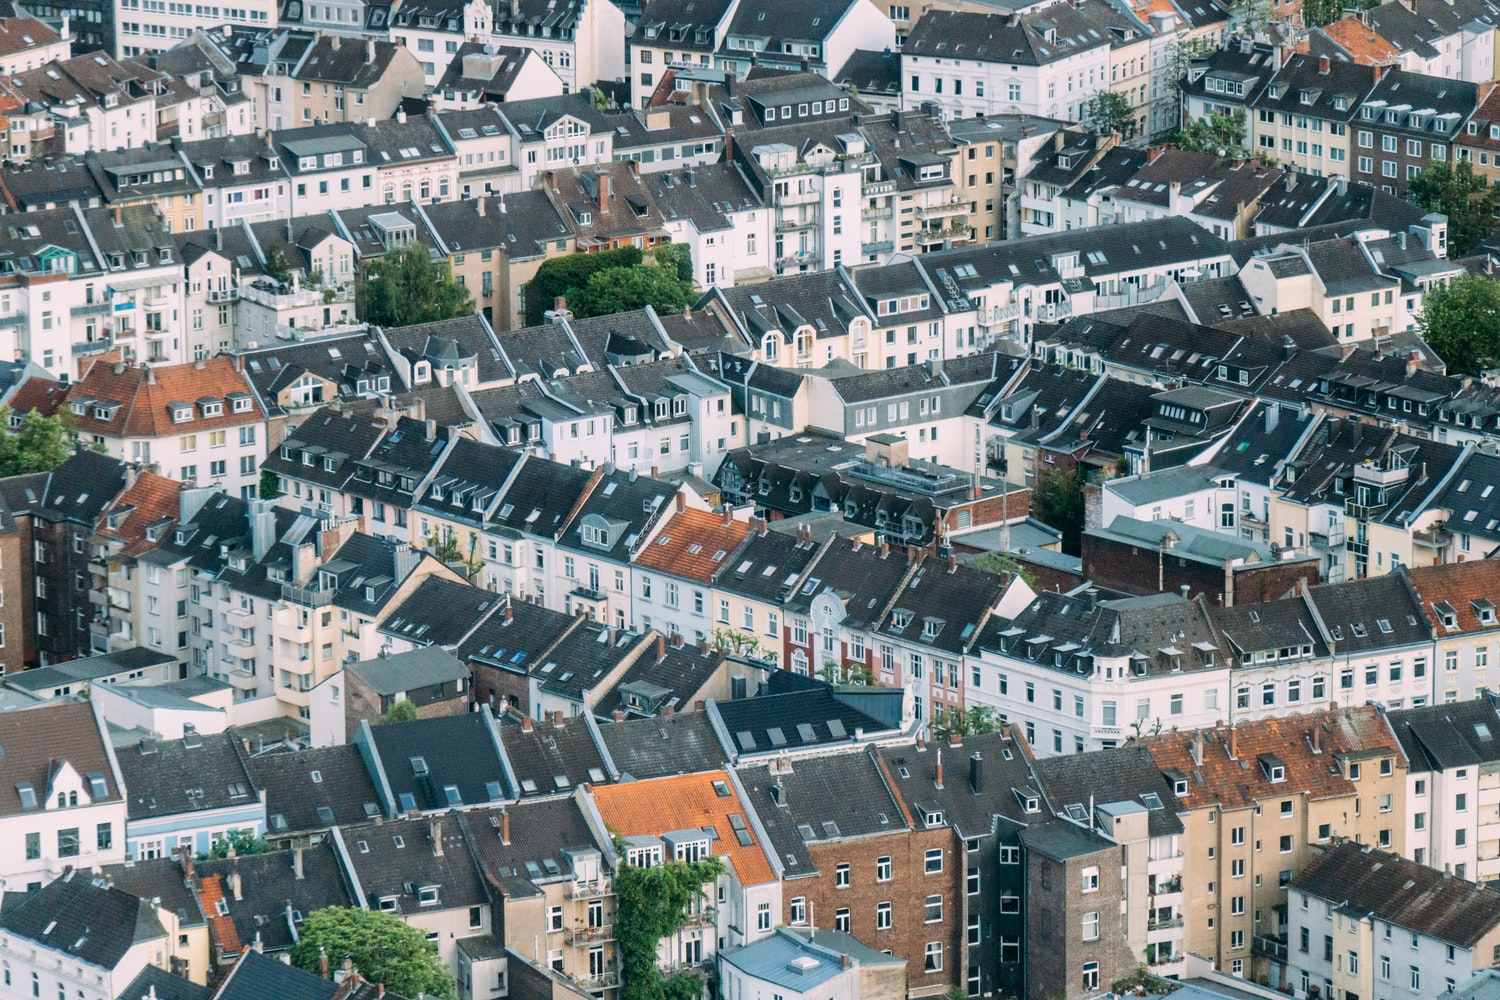 buying a house in Germany as an expat